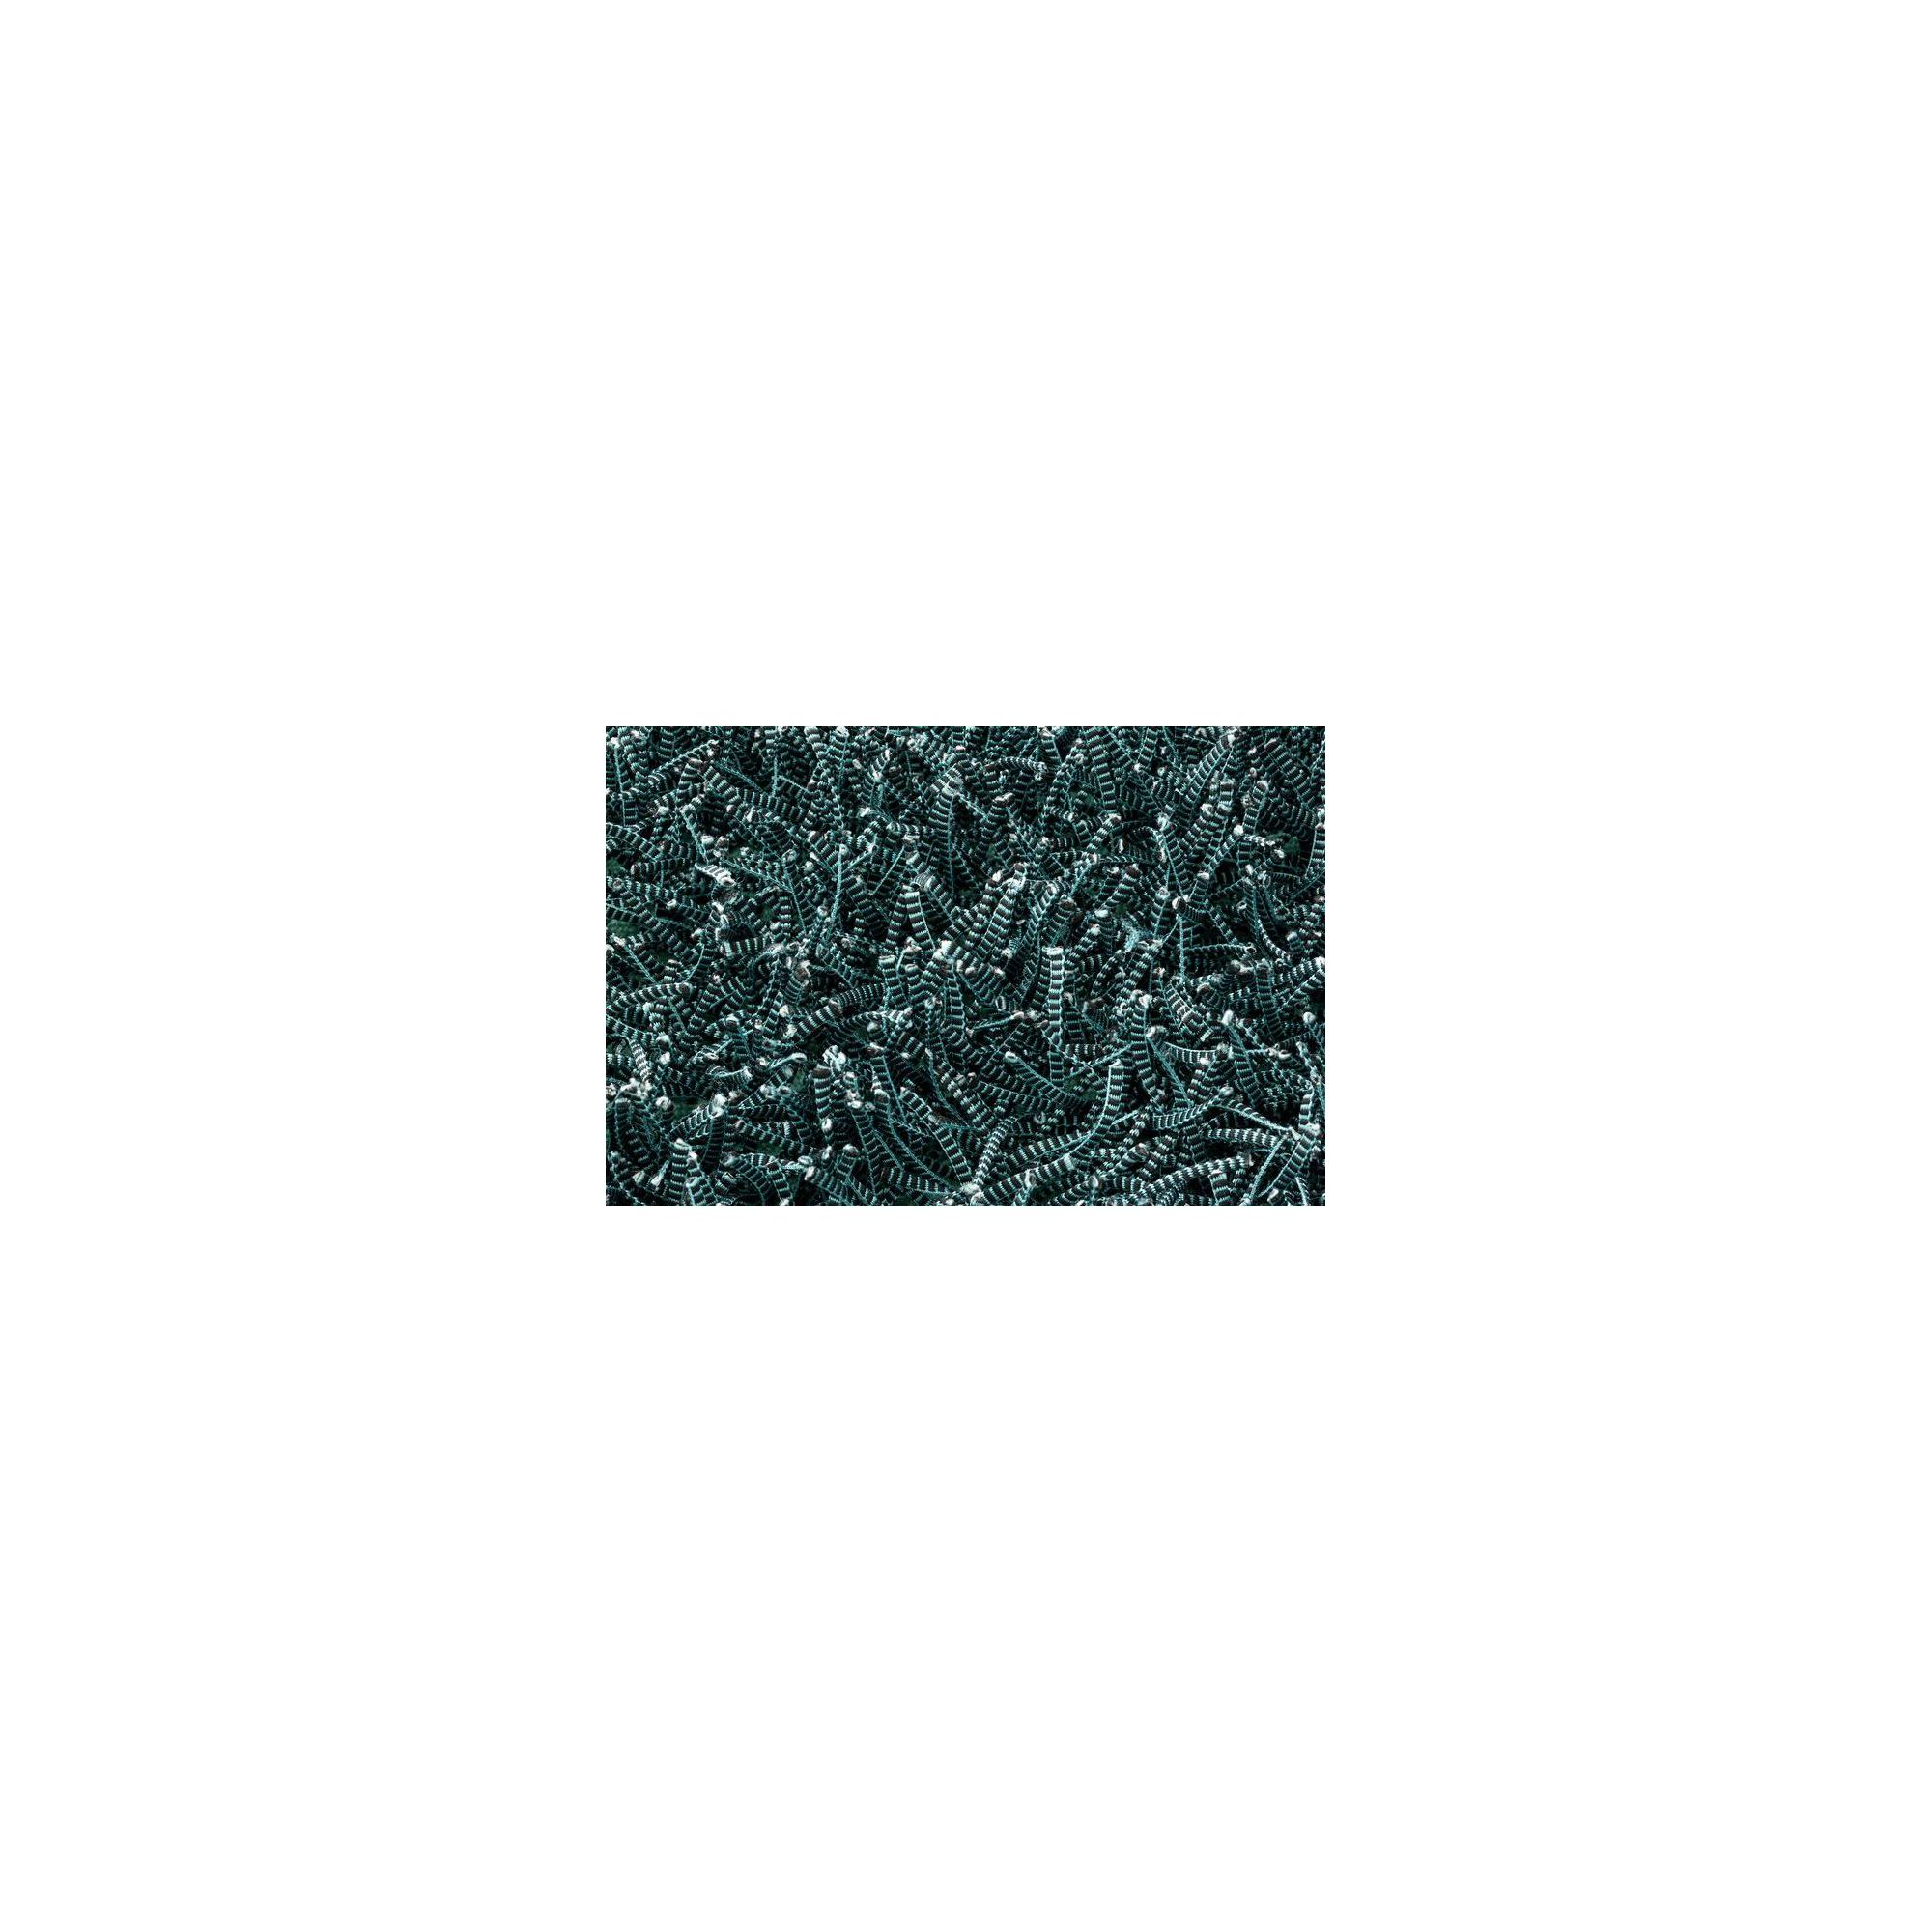 Linie Design Electric Turquoise Shag Rug - 300cm x 200cm at Tesco Direct